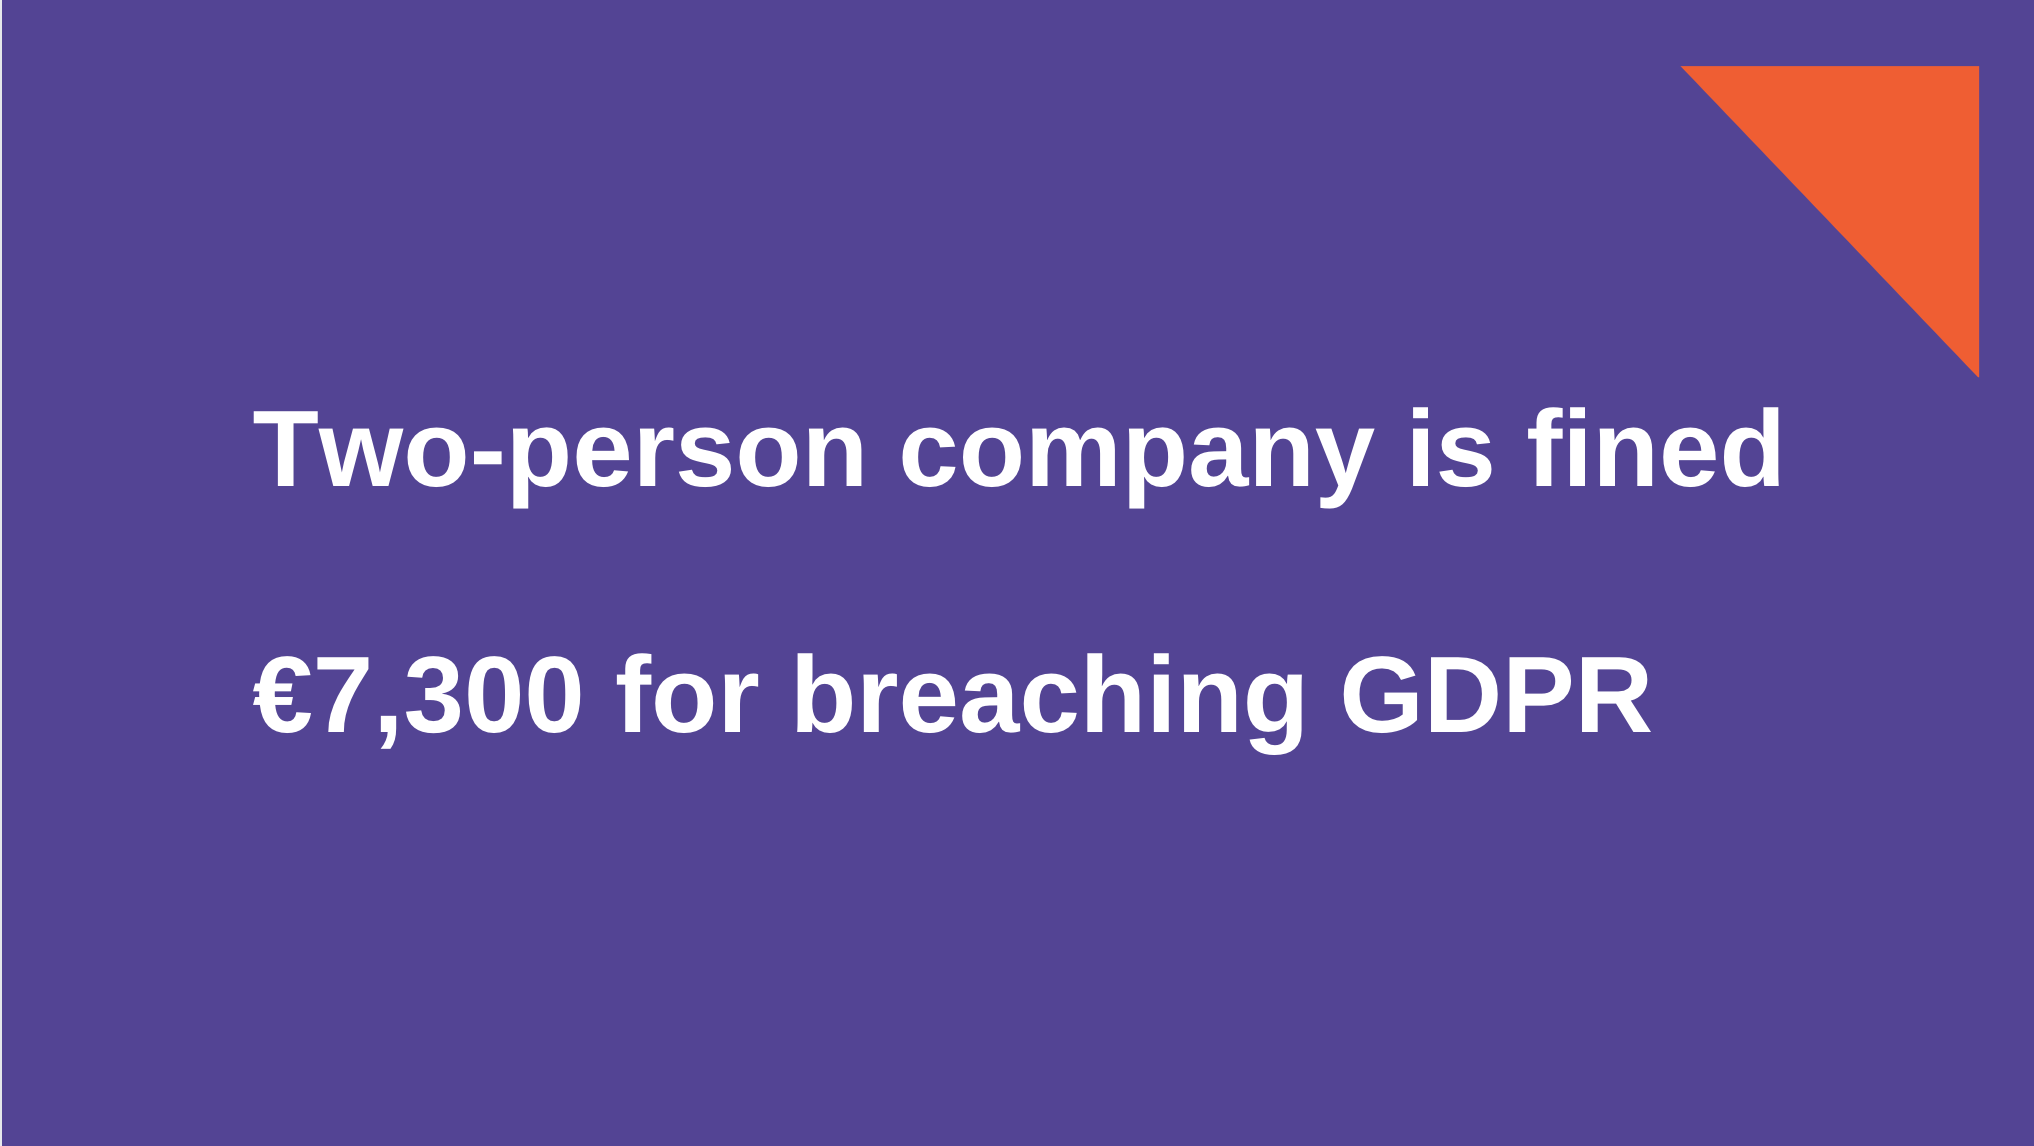 GDPR: Two-person small business is fined €7,300